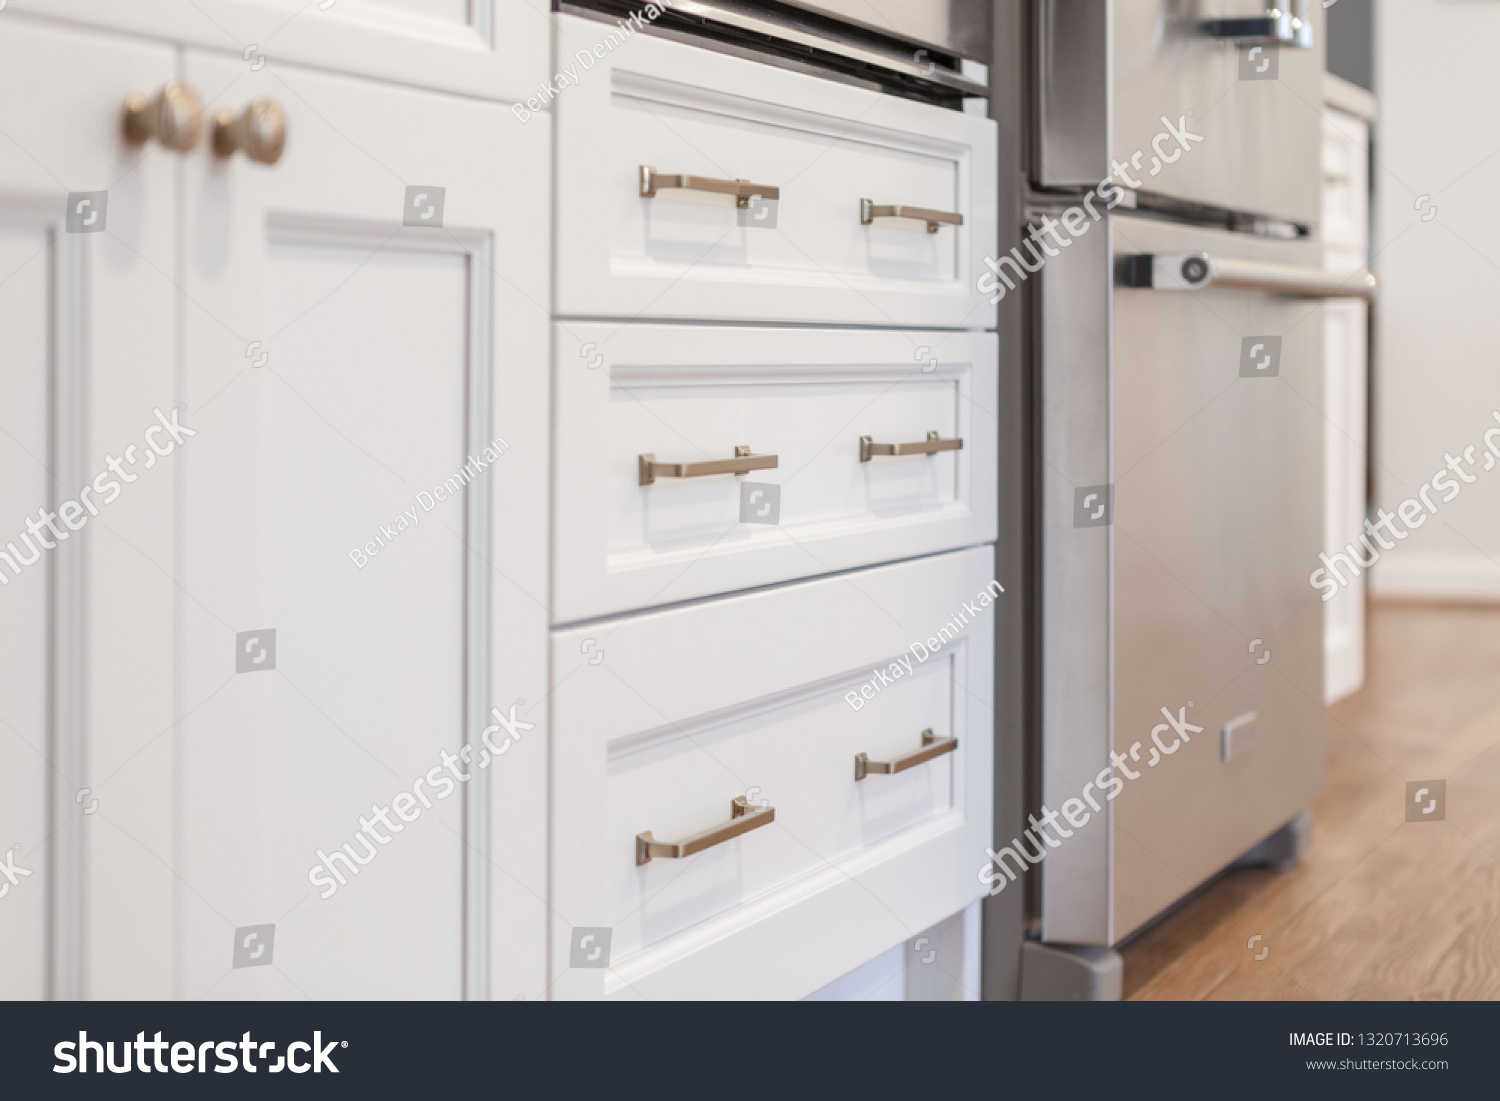 White Kitchen Built Shaker Style Cabinets Stock Photo Edit Now 1320713696